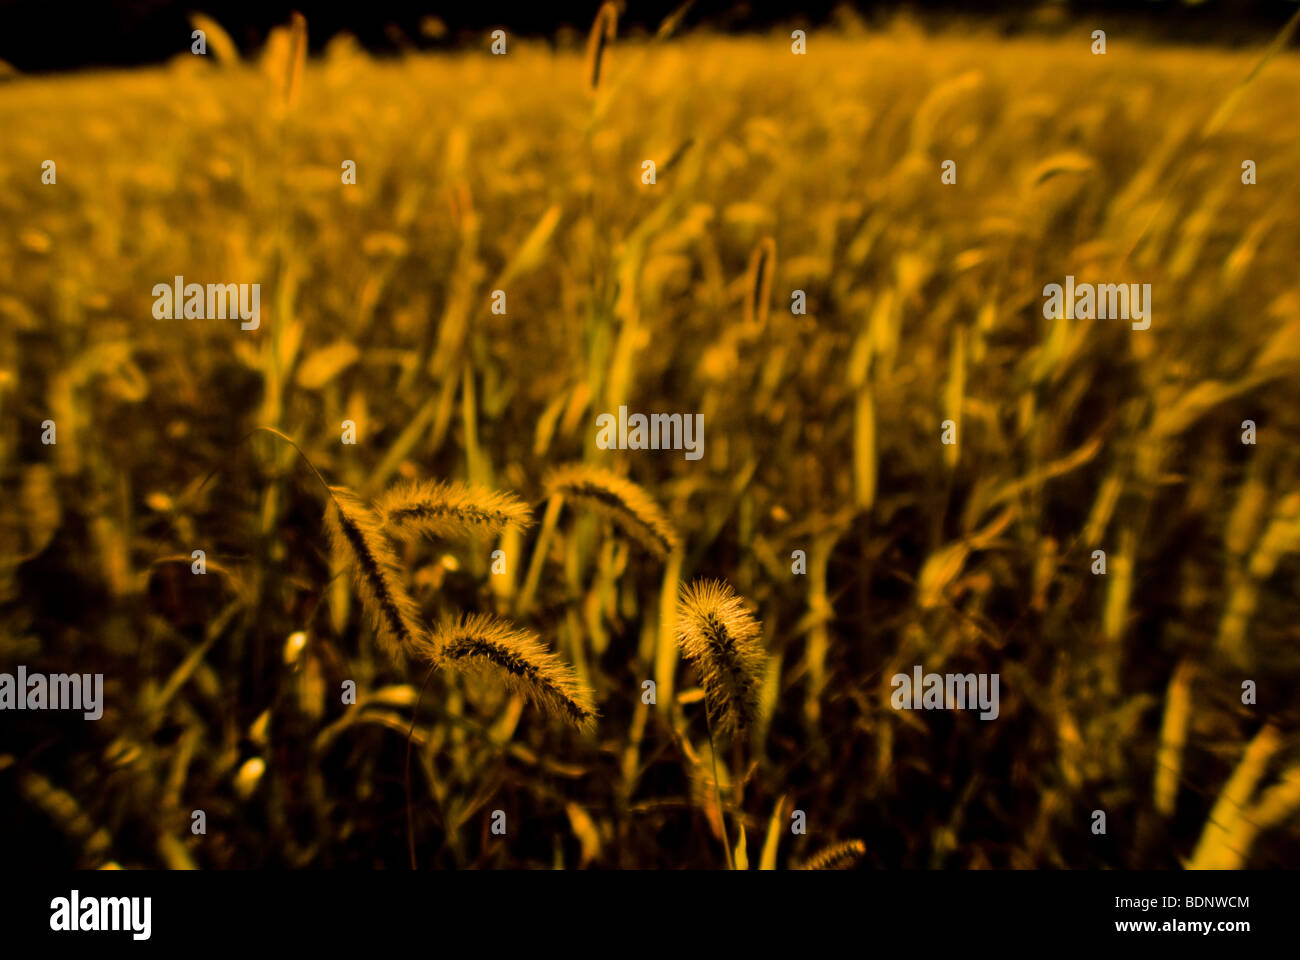 Golden grass - Stock Image